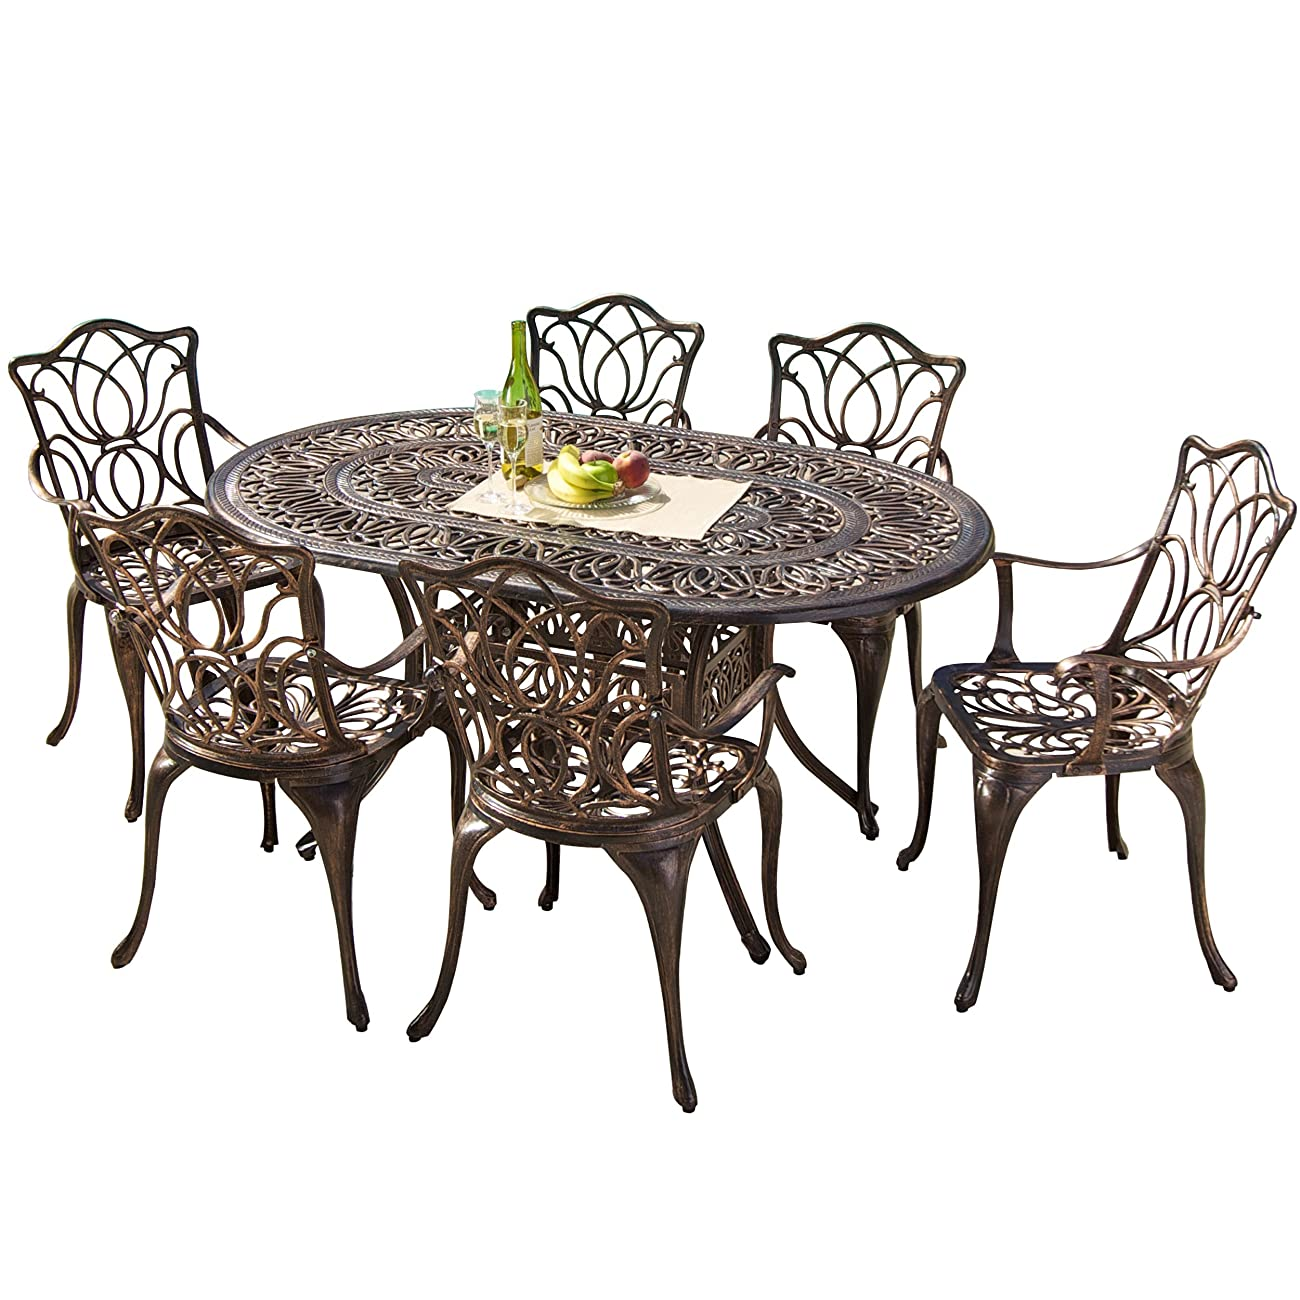 Gardena Cast Aluminum Outdoor Dining Set (Set of 7) 0